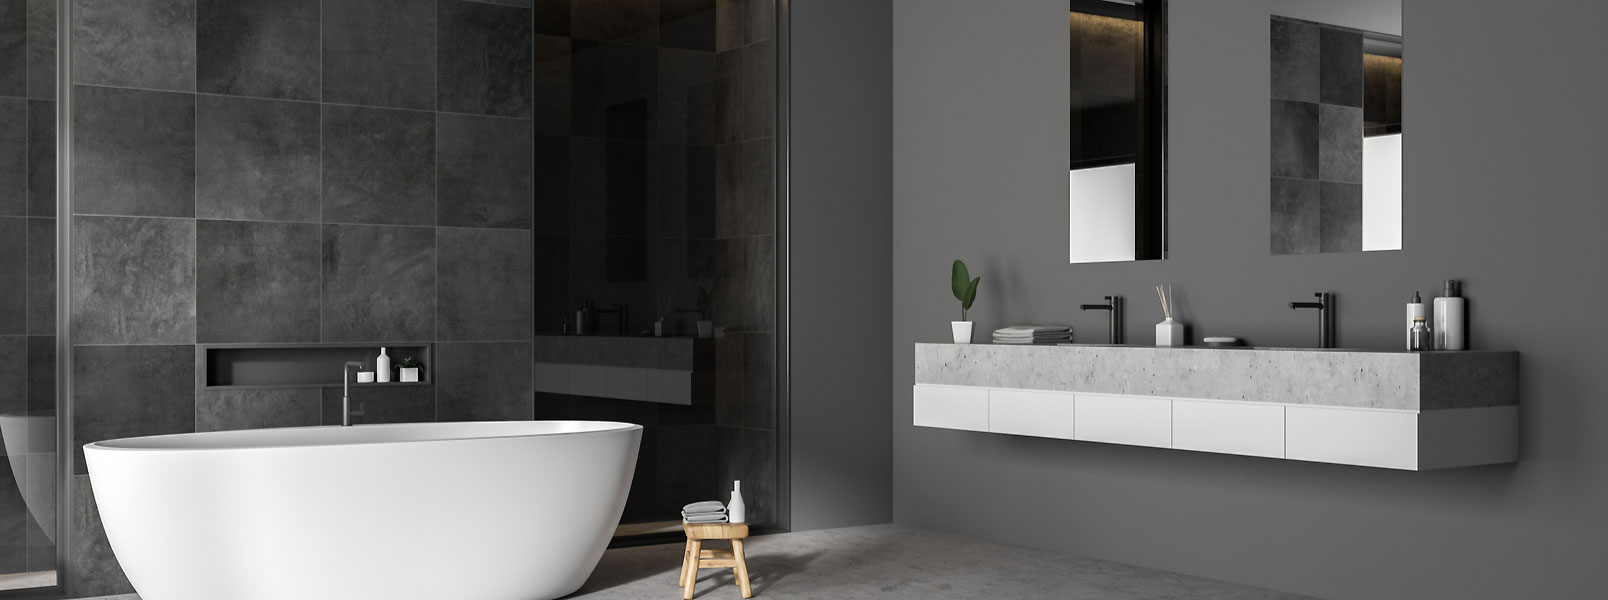 10 Bathroom Trends To Look Out For As 2020 Approaches